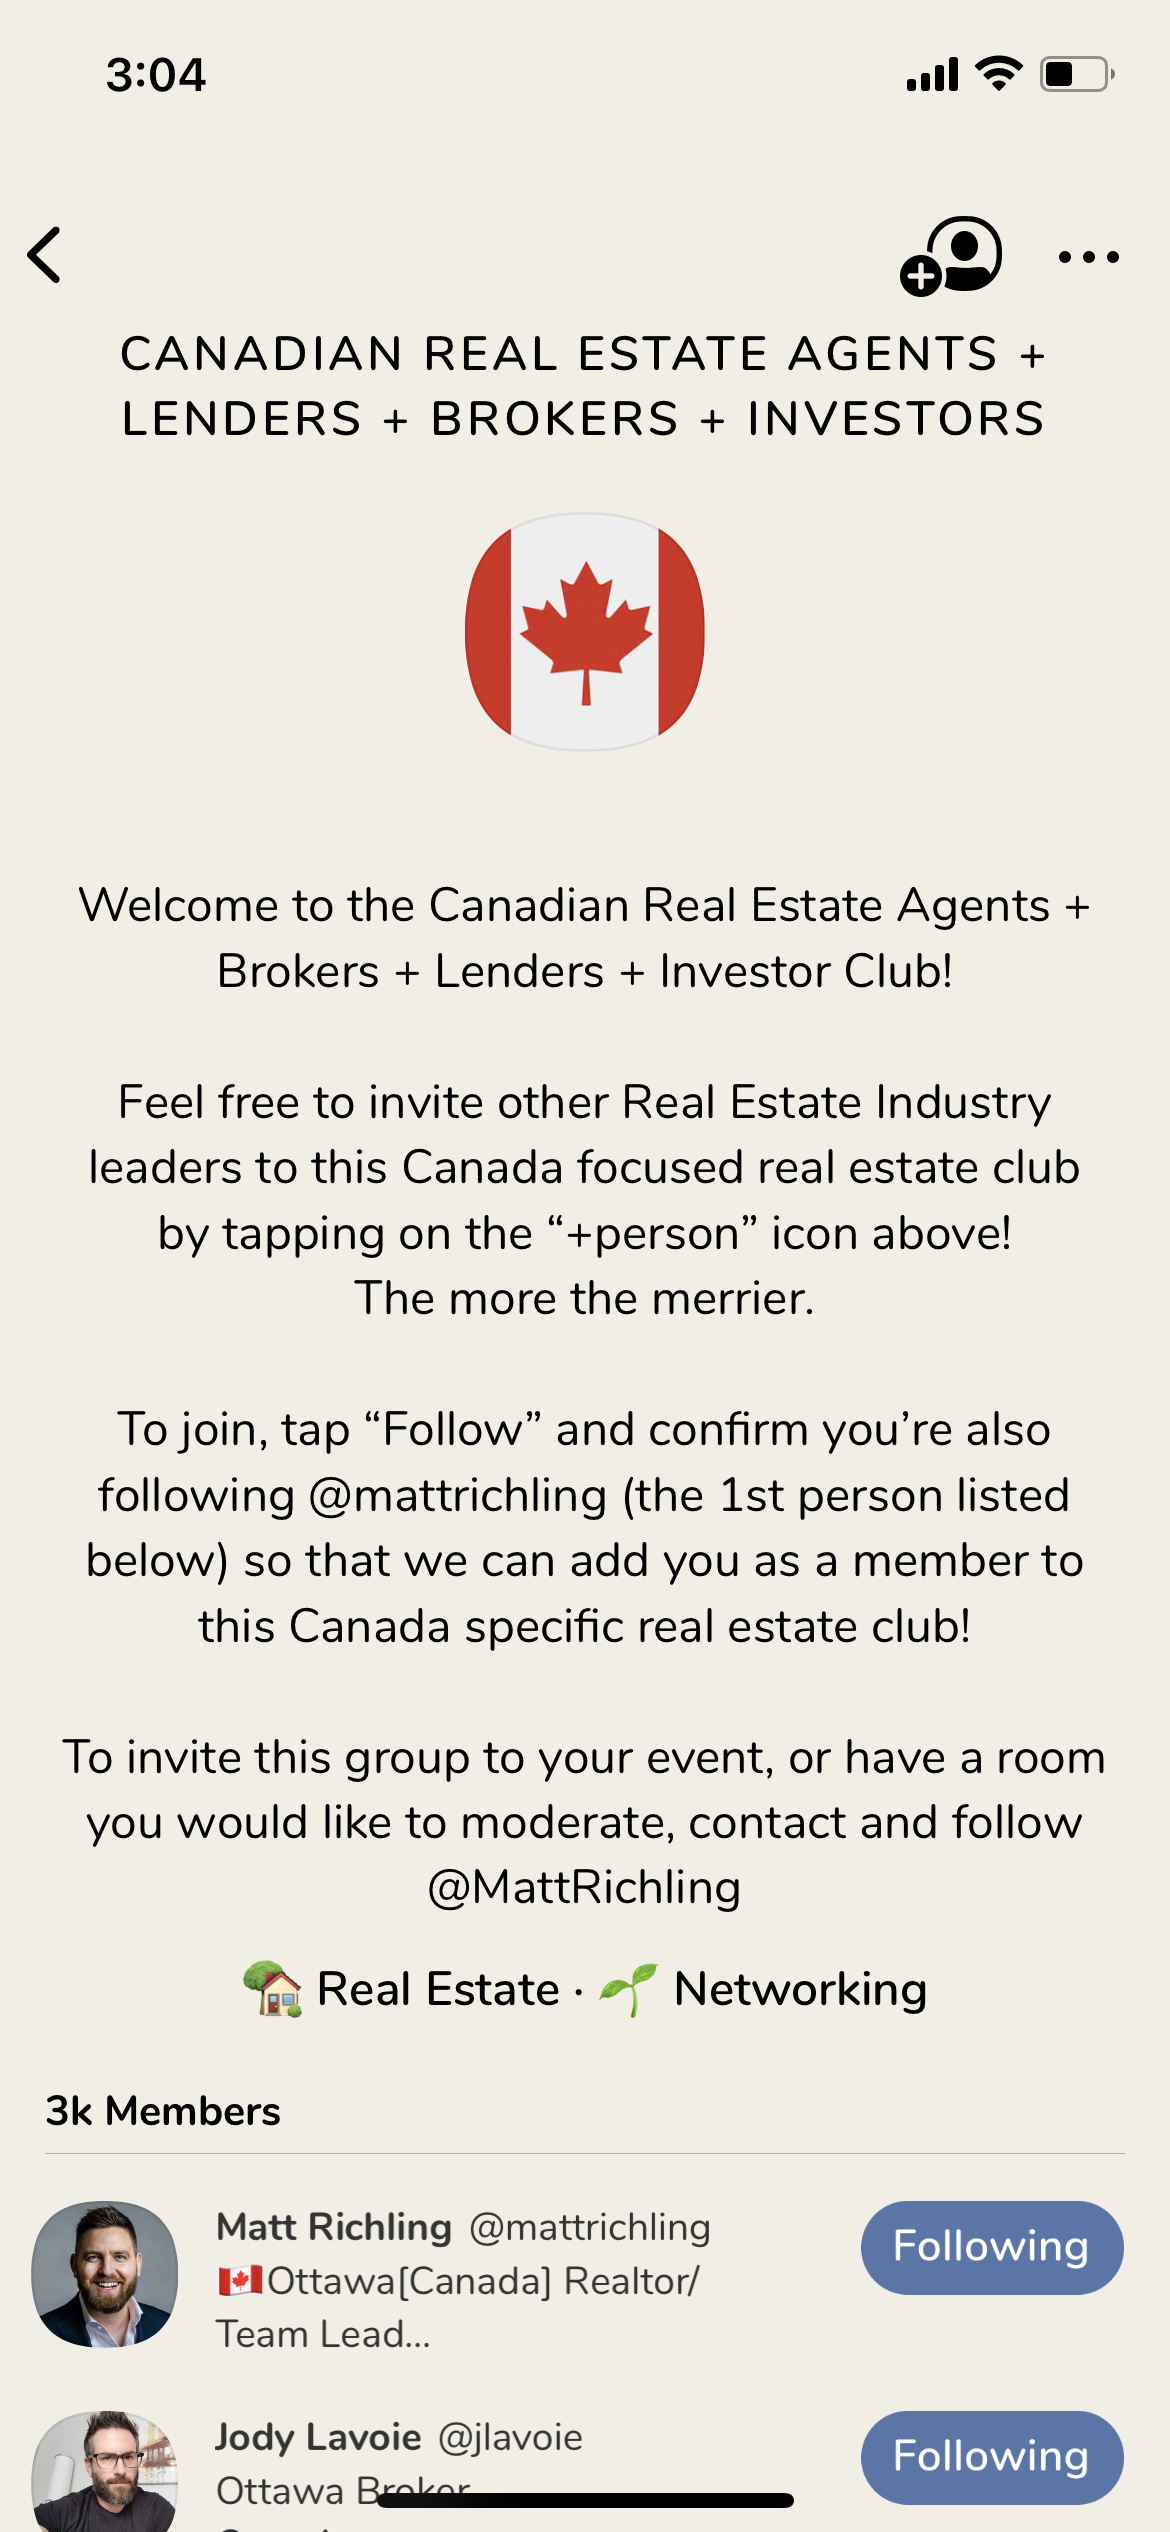 Canadian Real Estate Club - Clubhouse for Realtors